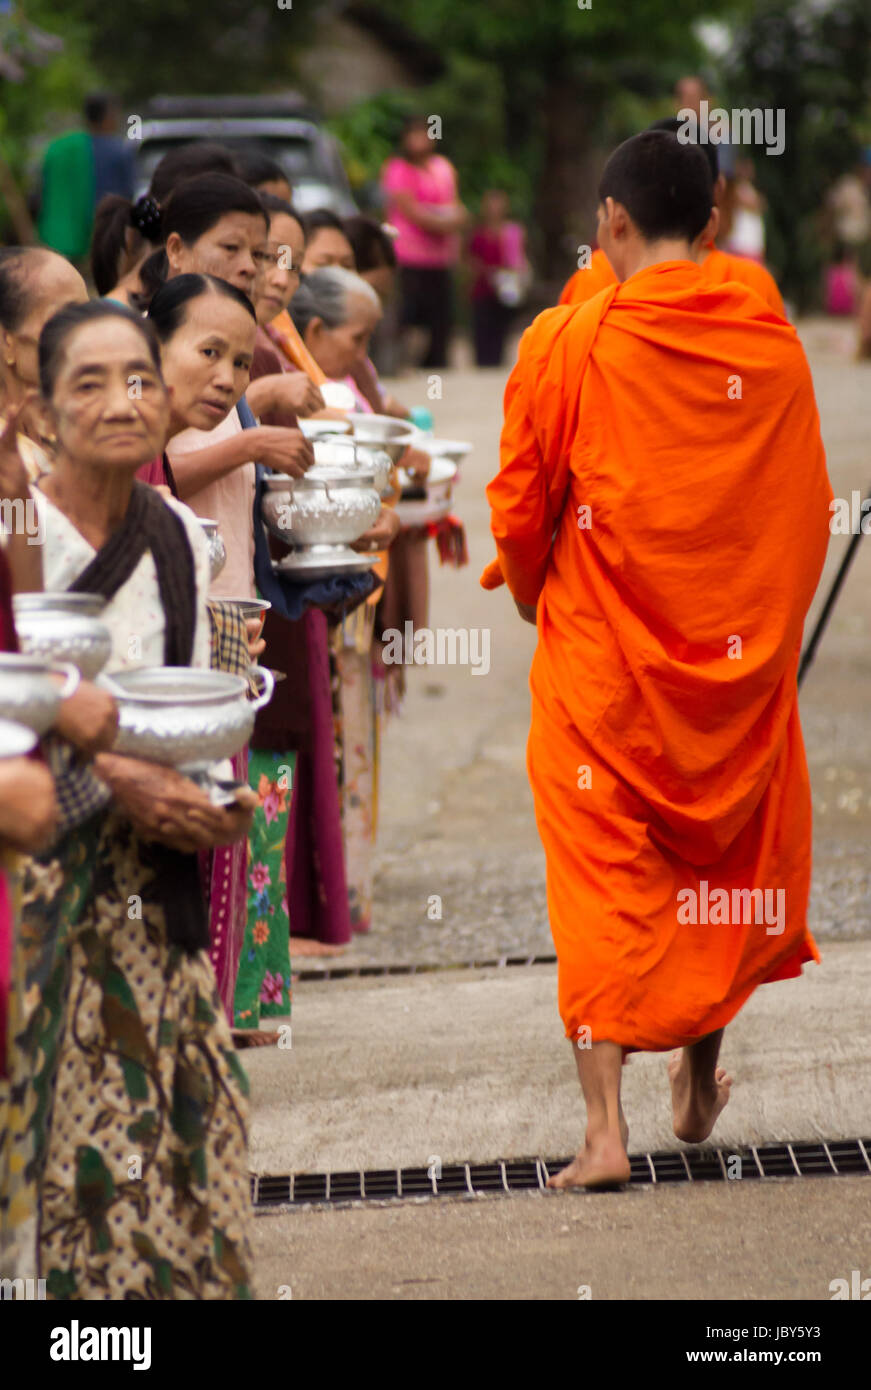 THAILAND, SANGKHLA BURI - NOVEMBER 21, 2012: Buddhist monks collecting alms and food given by the local people in Stock Photo